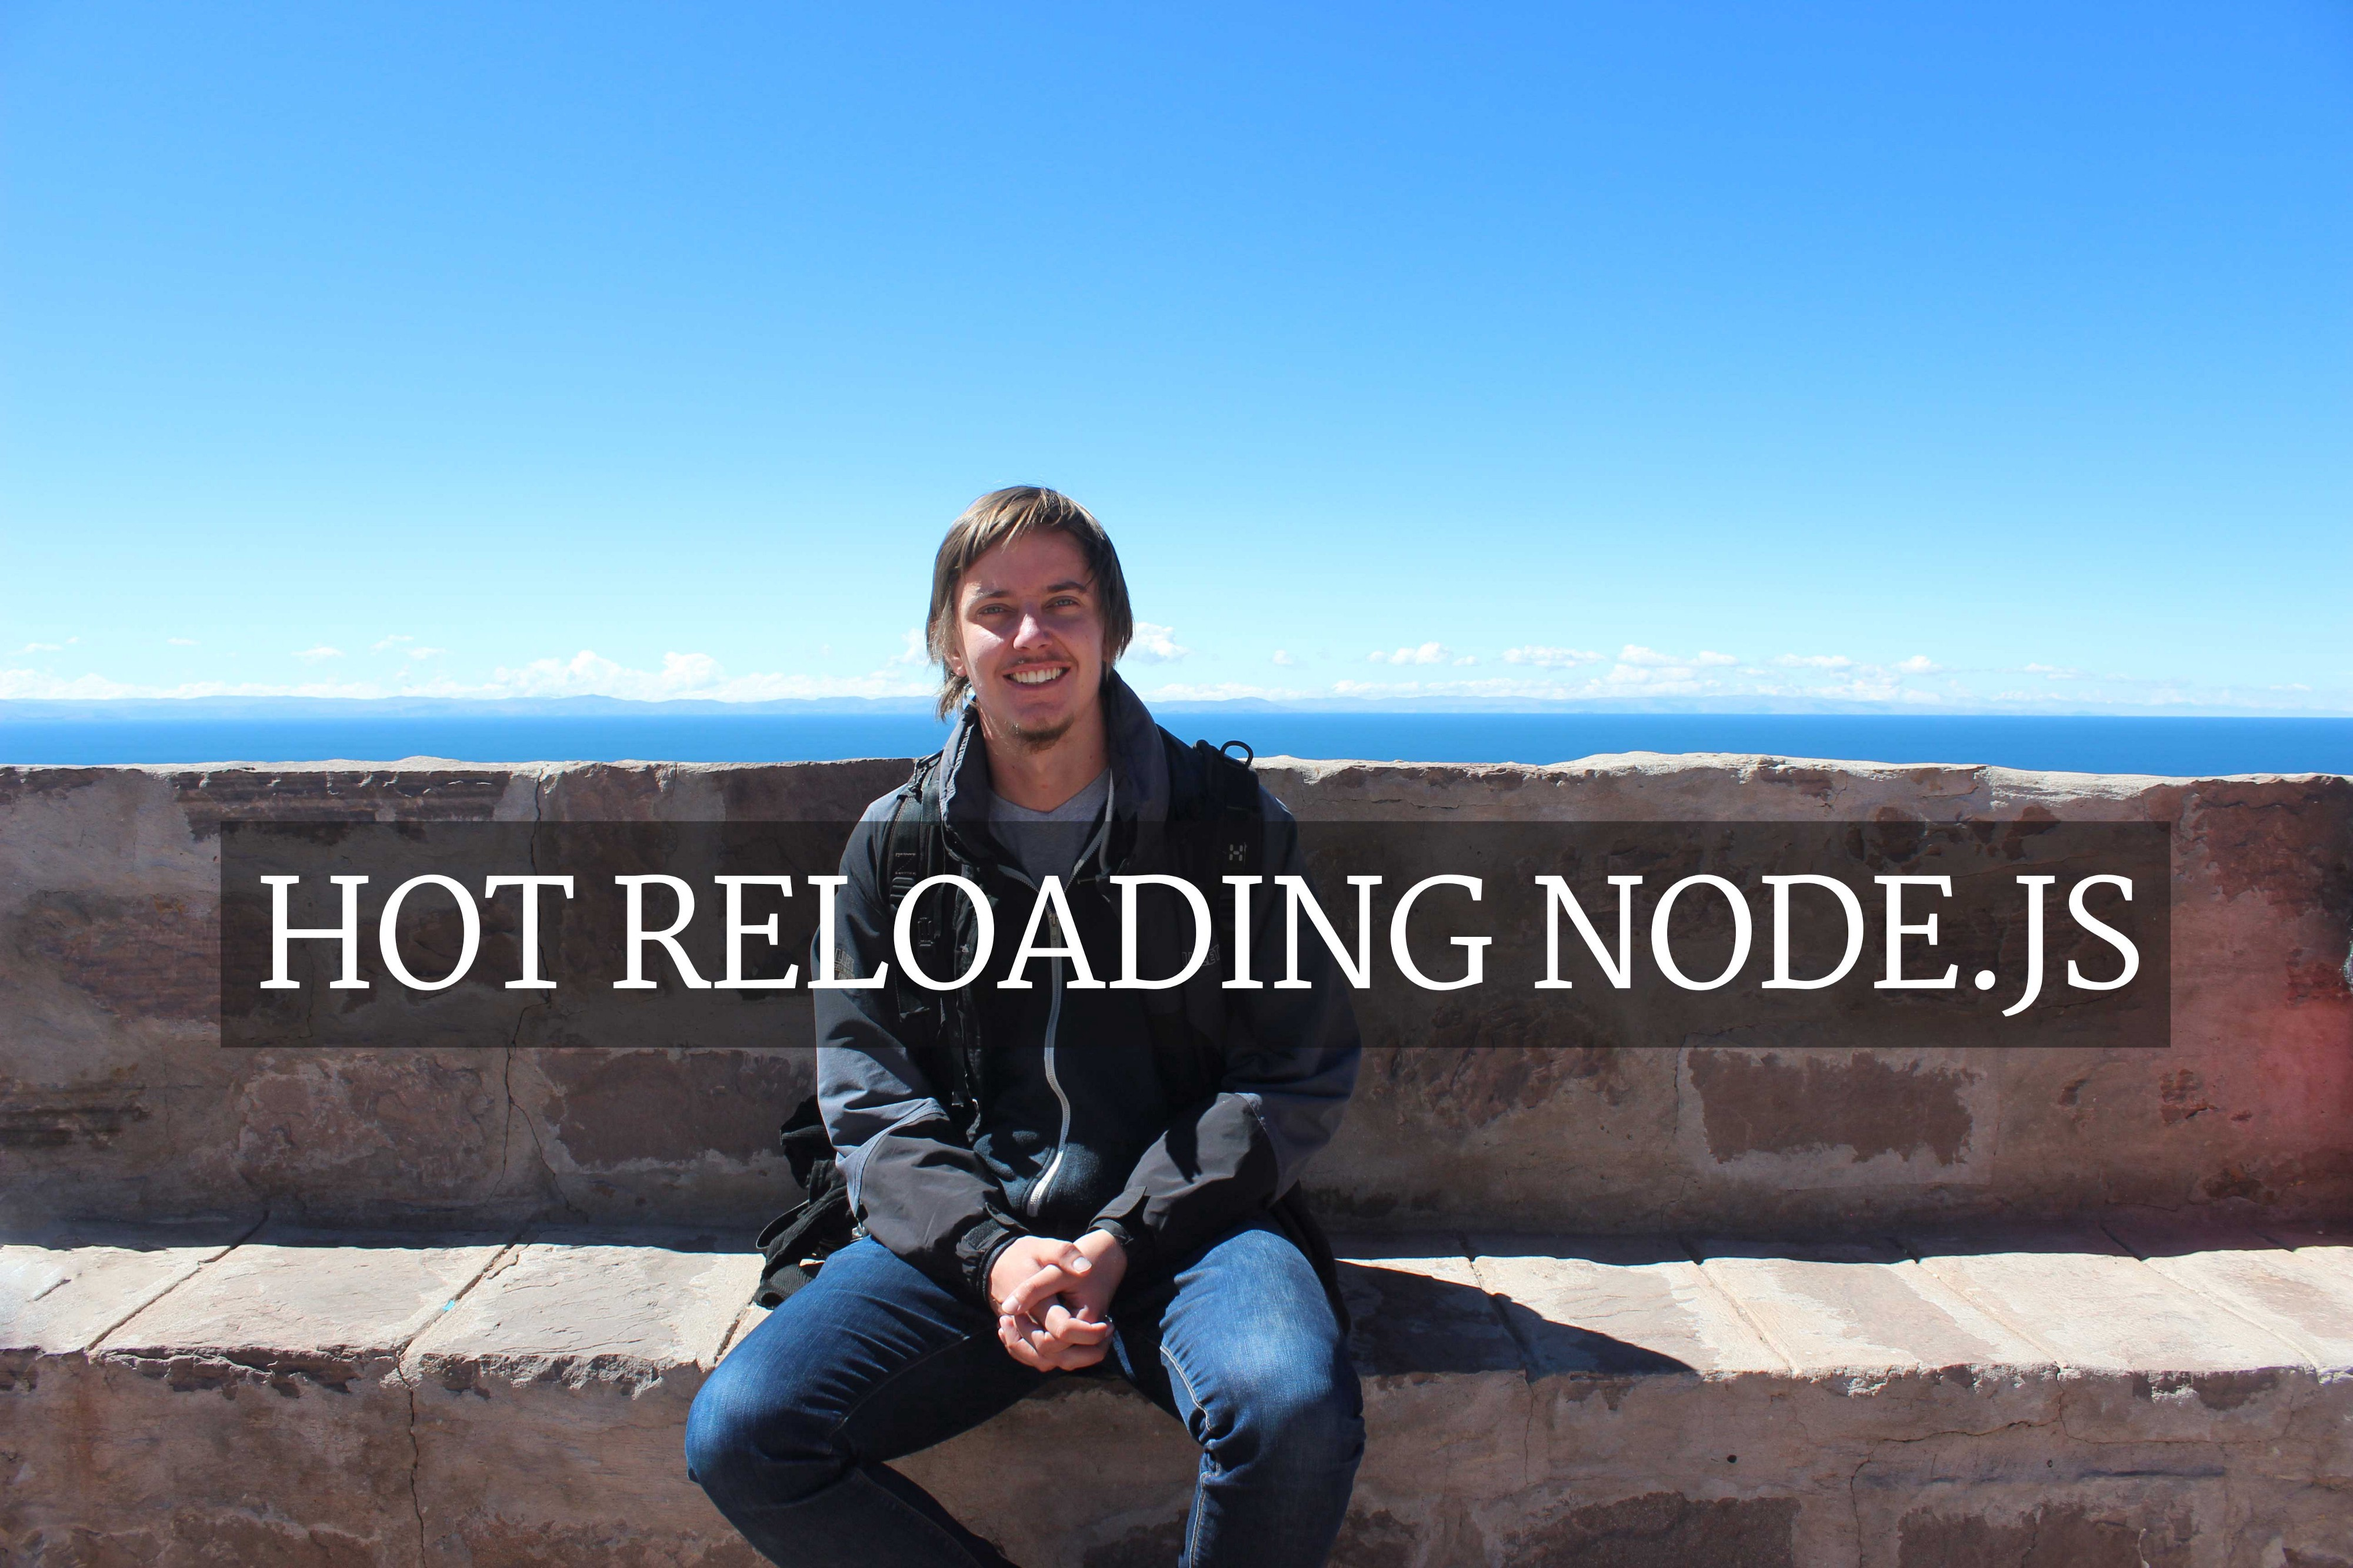 Don't use nodemon, there are better ways! - codeburst